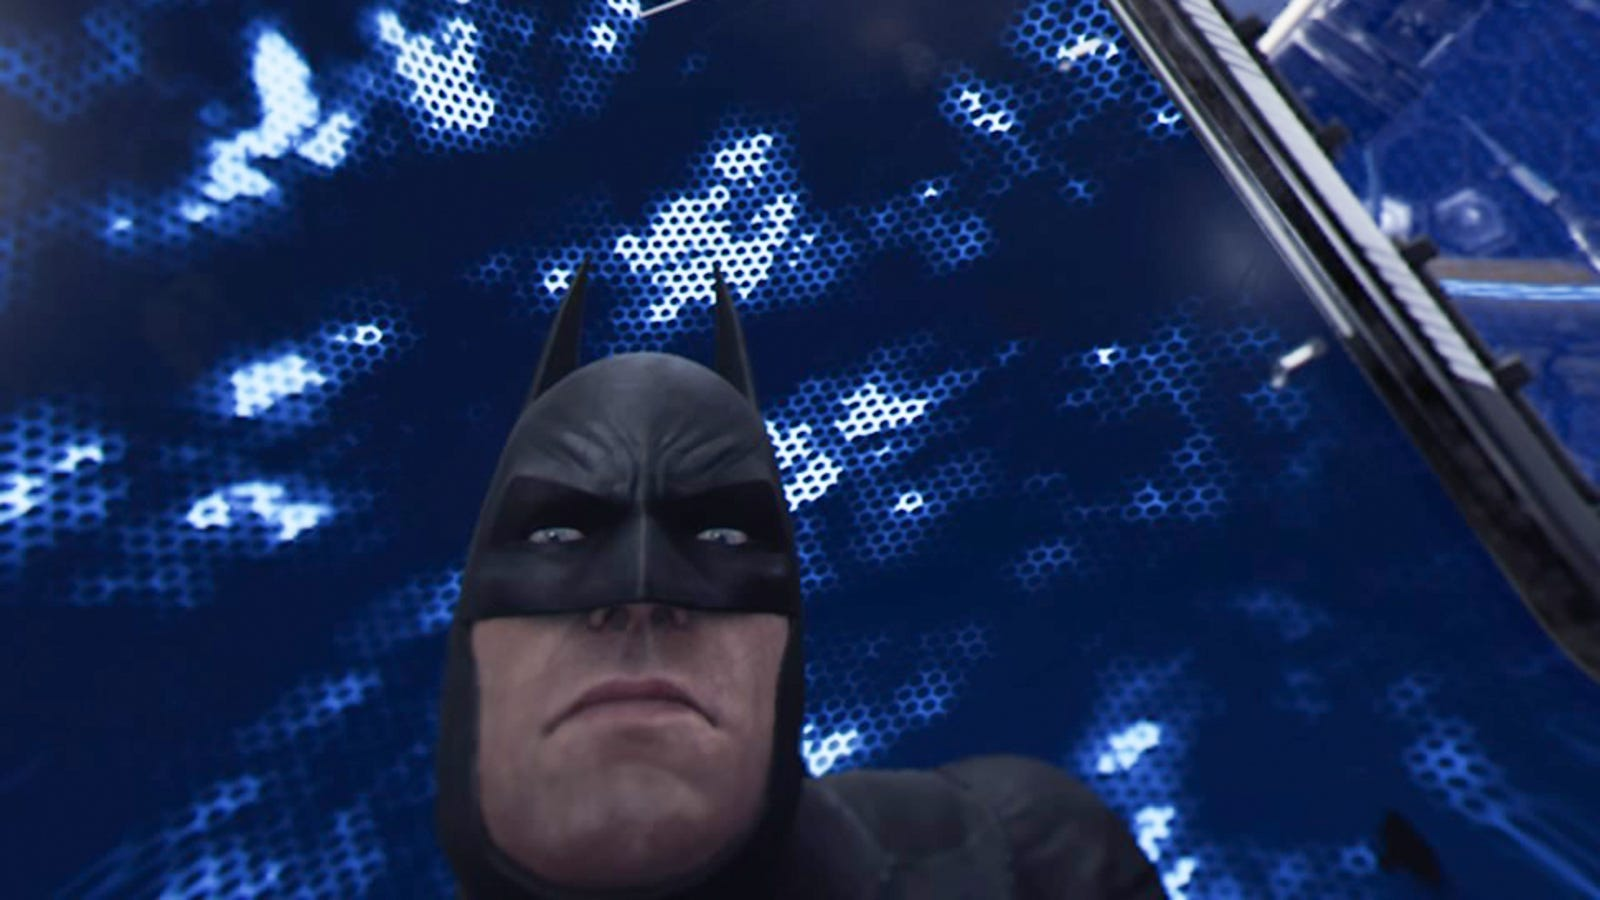 Batman Arkham VR Finally Made Me Empathize With the Dark Knight